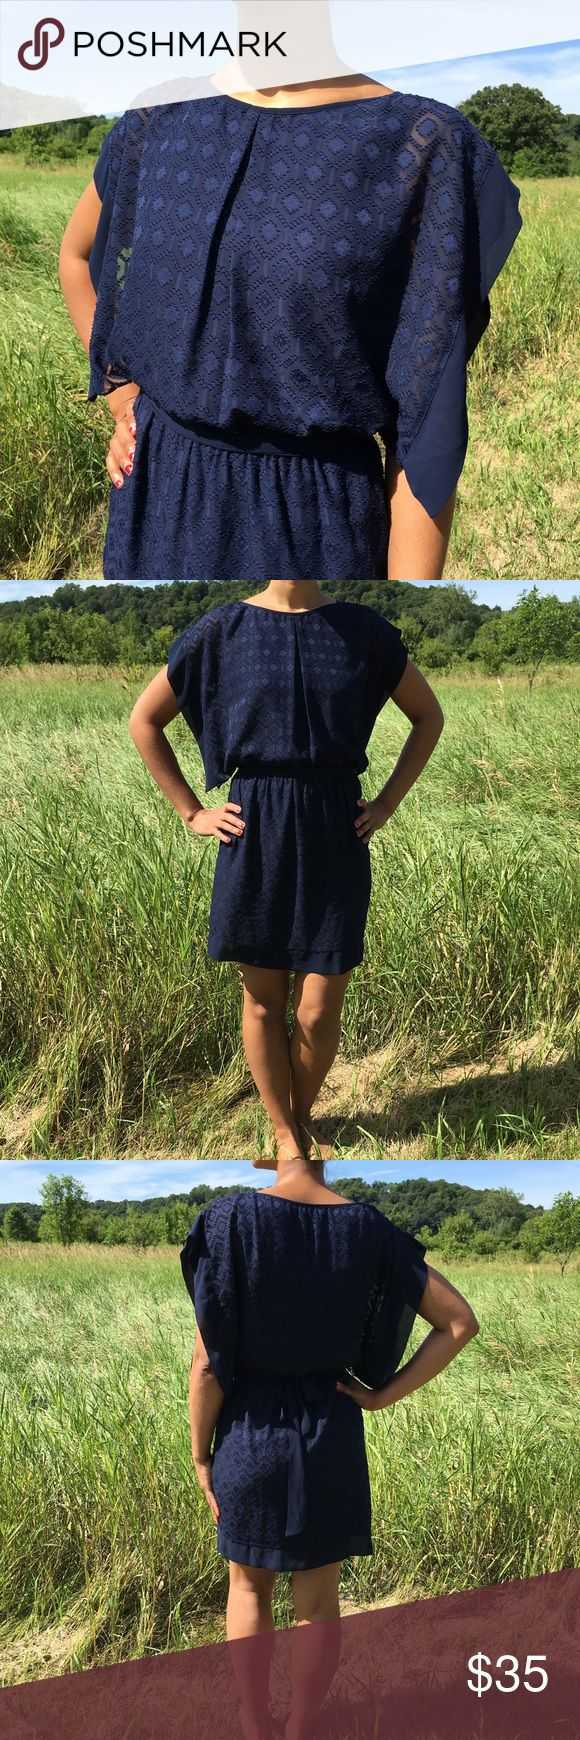 "HP Navy Batwing Dress with Sash New with tags! Navy blue batwing dress with sash belt (elastic waistband). Junior's size medium, modeled on women's 4/6. Approximately 35"" long. Fully lined. 100% polyester lining and shell. ""Fresh Fashion Finds"" Host Pick on 7/15/17  A. Byer Dresses Mini"